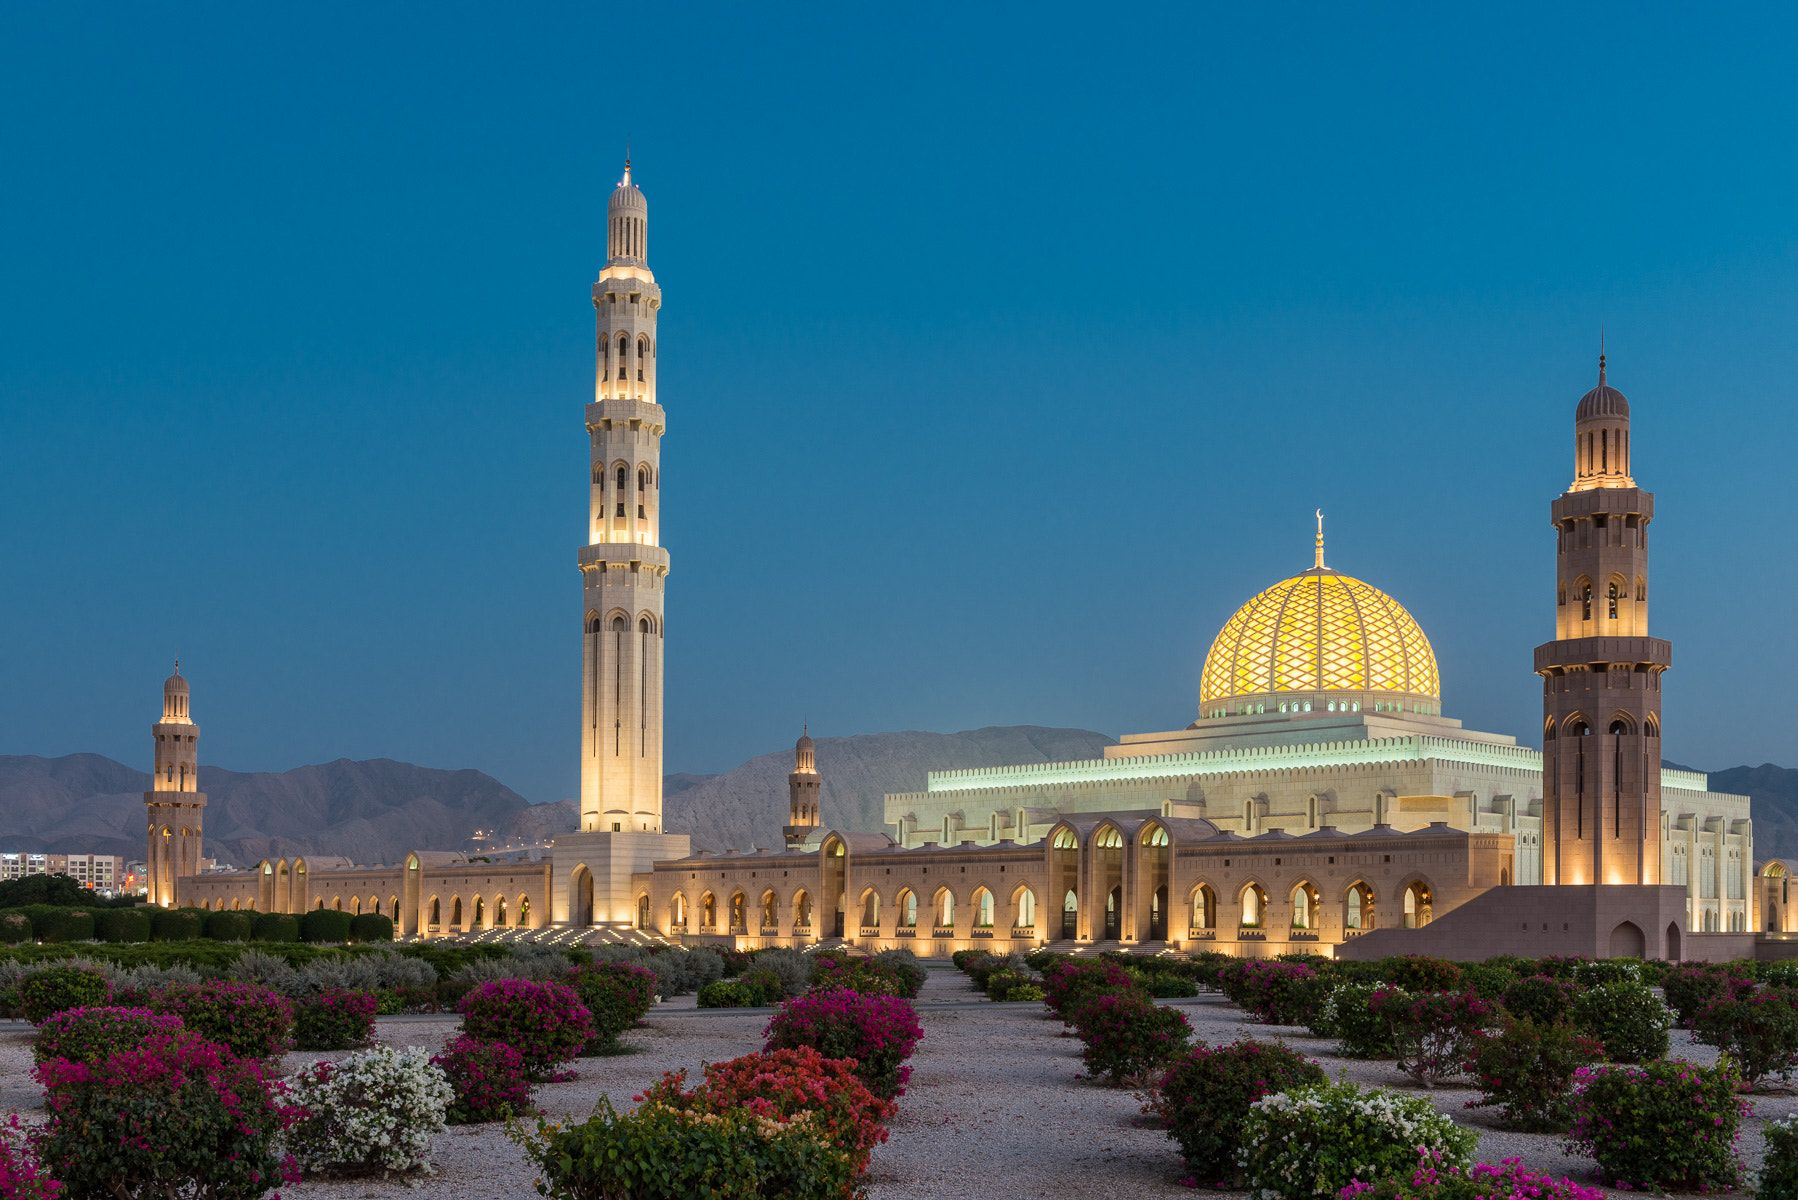 Sultan Qaboos Mosque in Muscat - The Sultan Qaboos Grand Mosque in ...